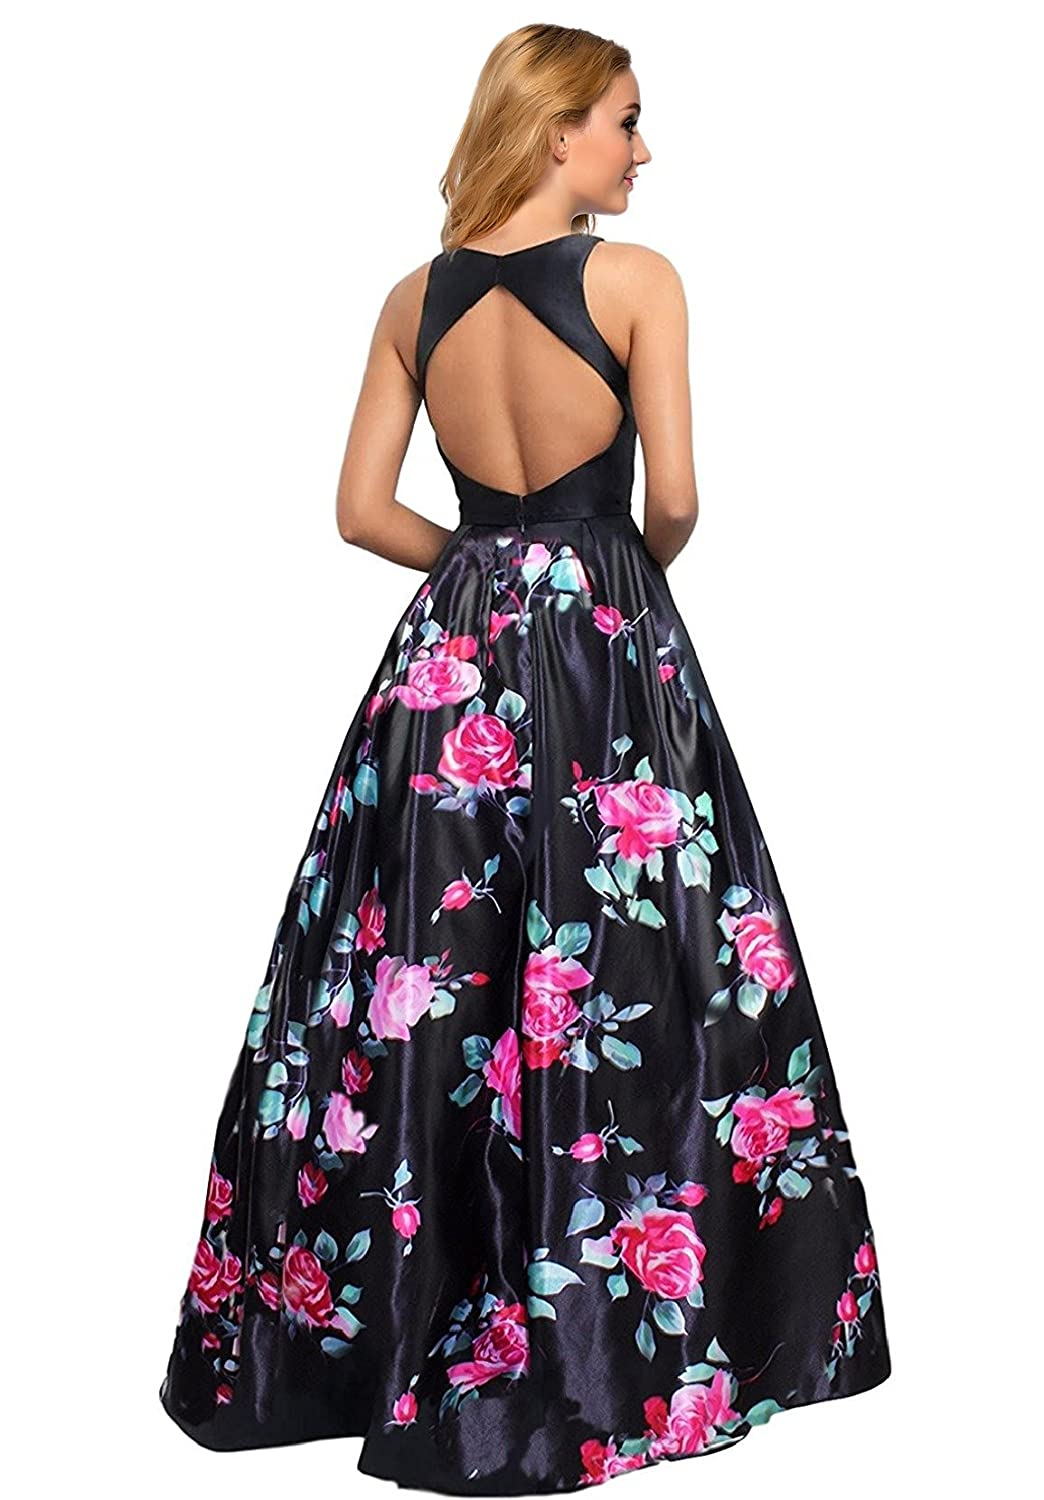 7e6ed01ccf8 Lily Wedding Womens Long Floral Satin Prom Dress 2019 Sleeveless Aline  Evening Formal Ball Gown Open Back at Amazon Women s Clothing store